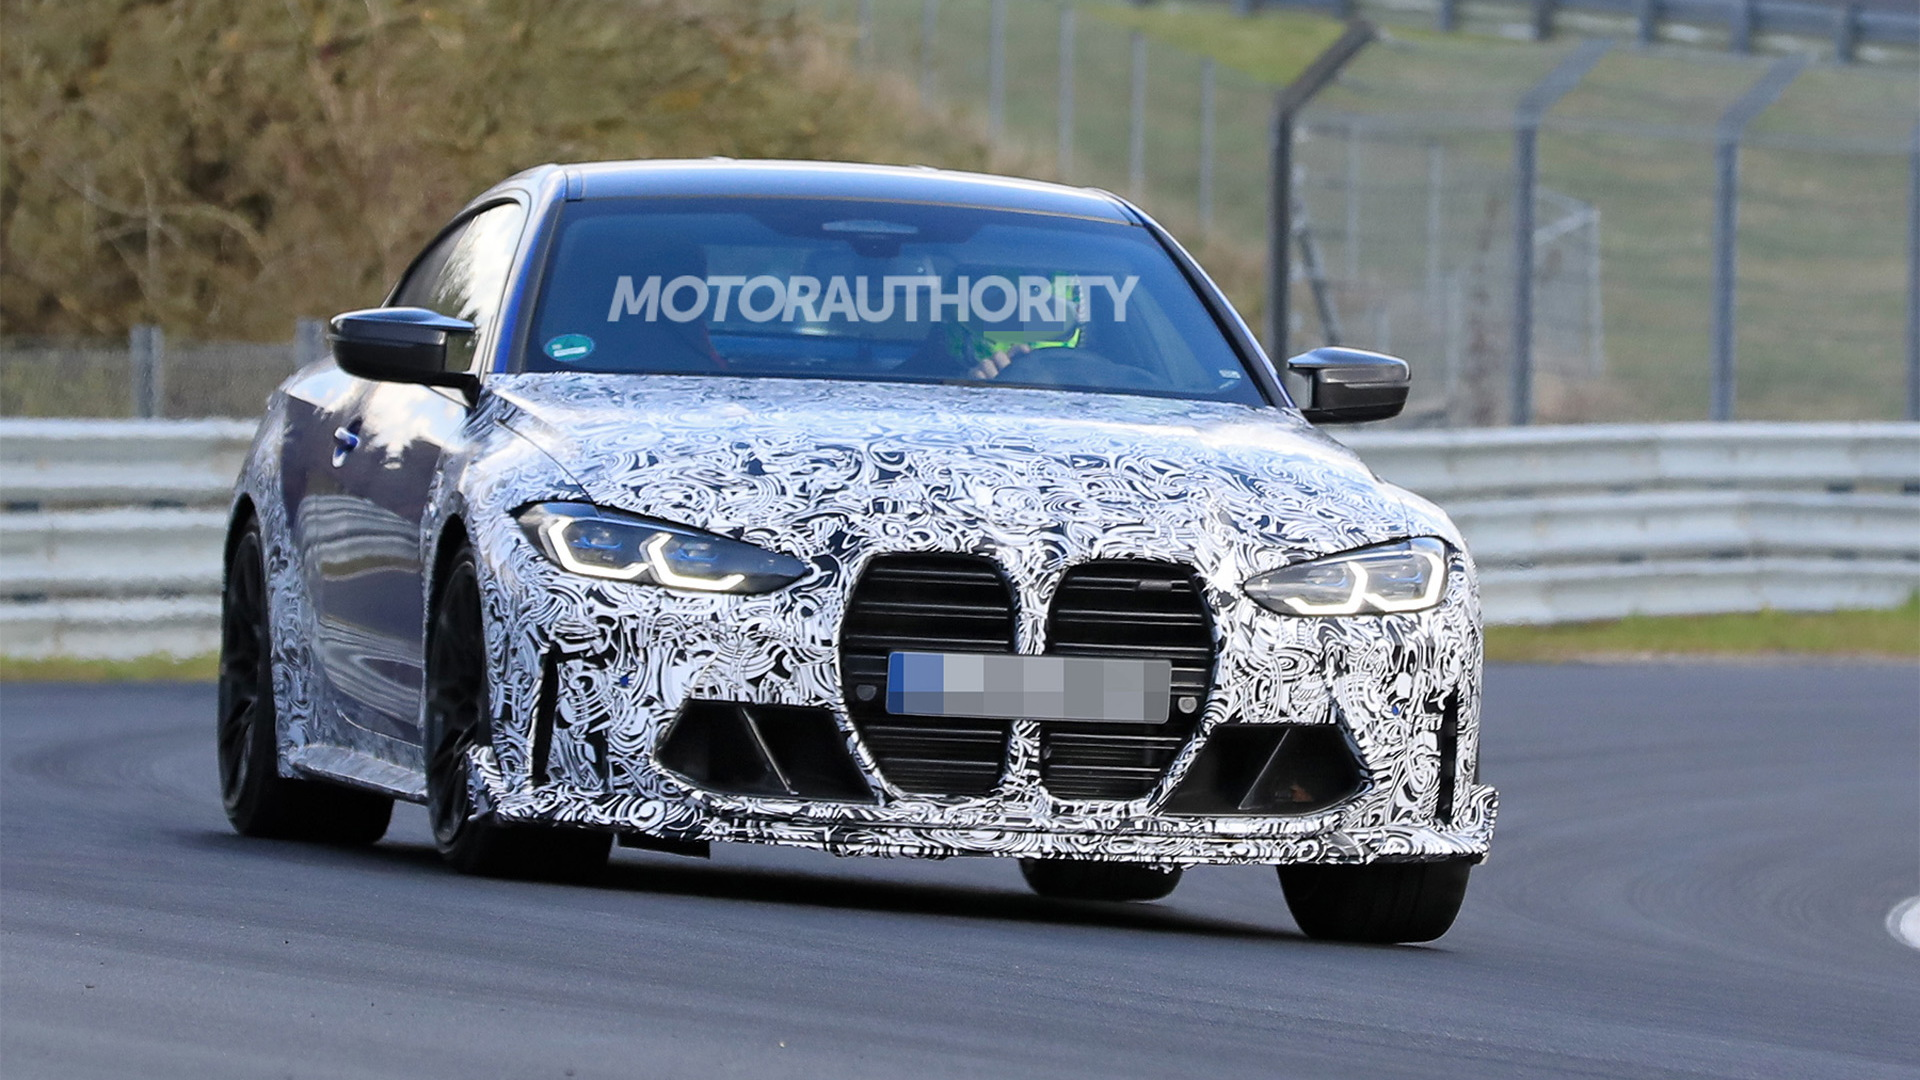 2023 BMW M4 CS spy shots - Photo credit: S. Baldauf/SB-Medien